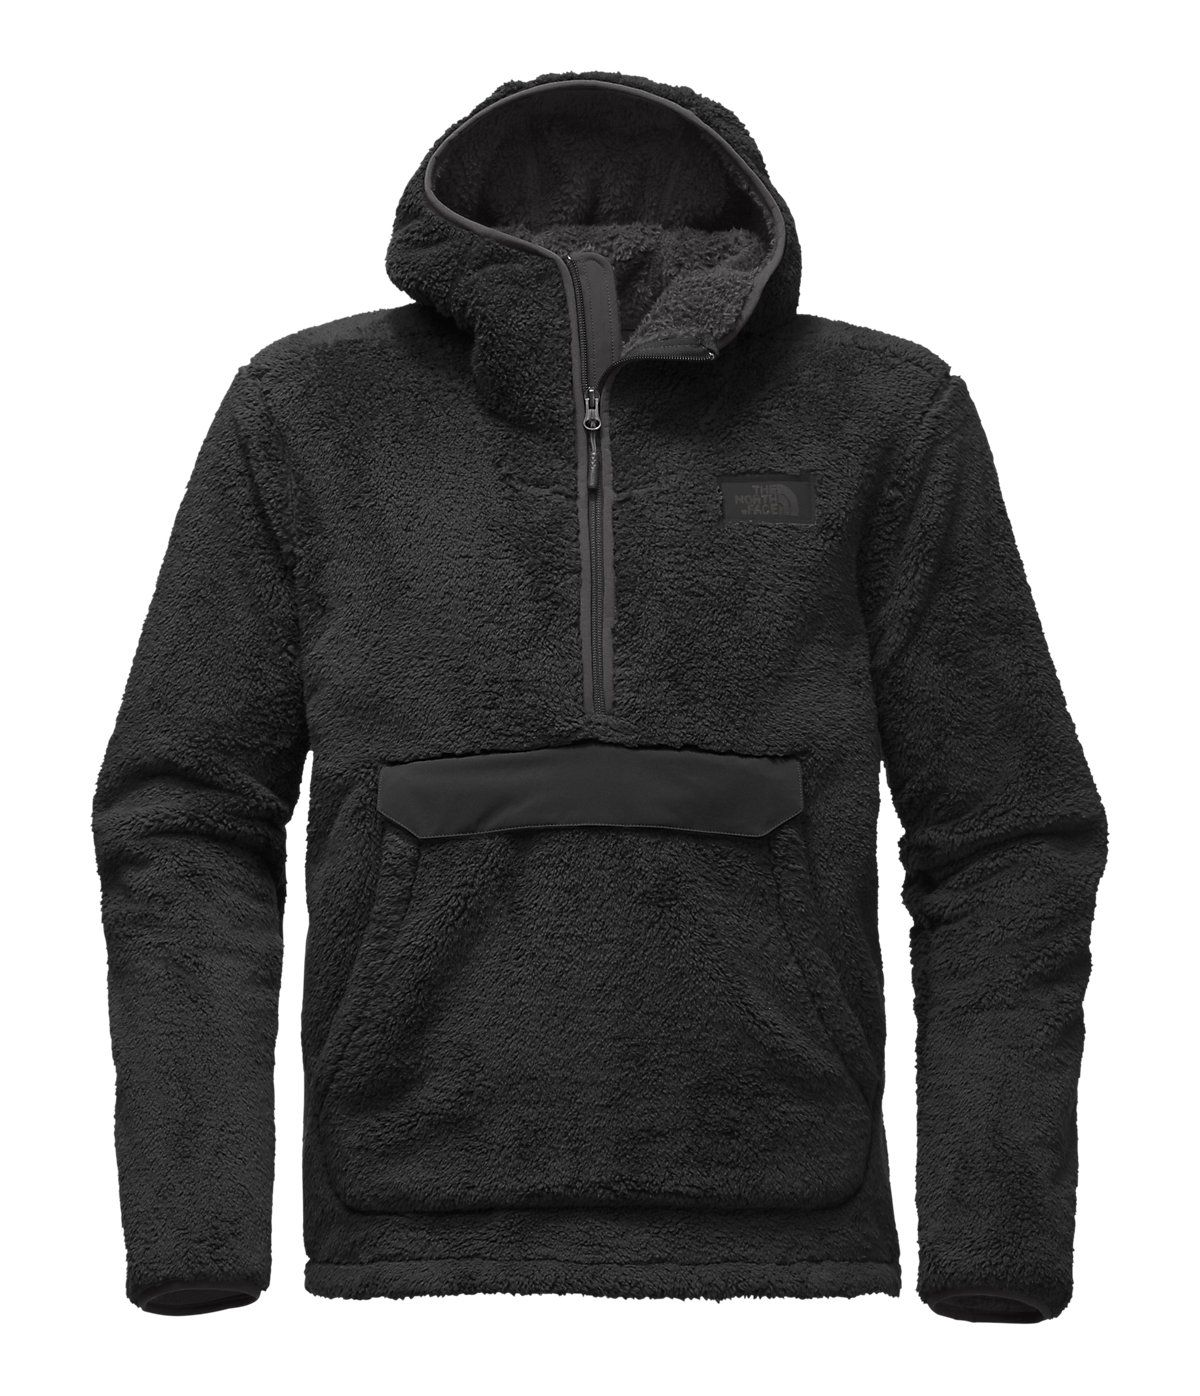 Men's Campshire Pullover Hoodie   The North Face   Hoodies